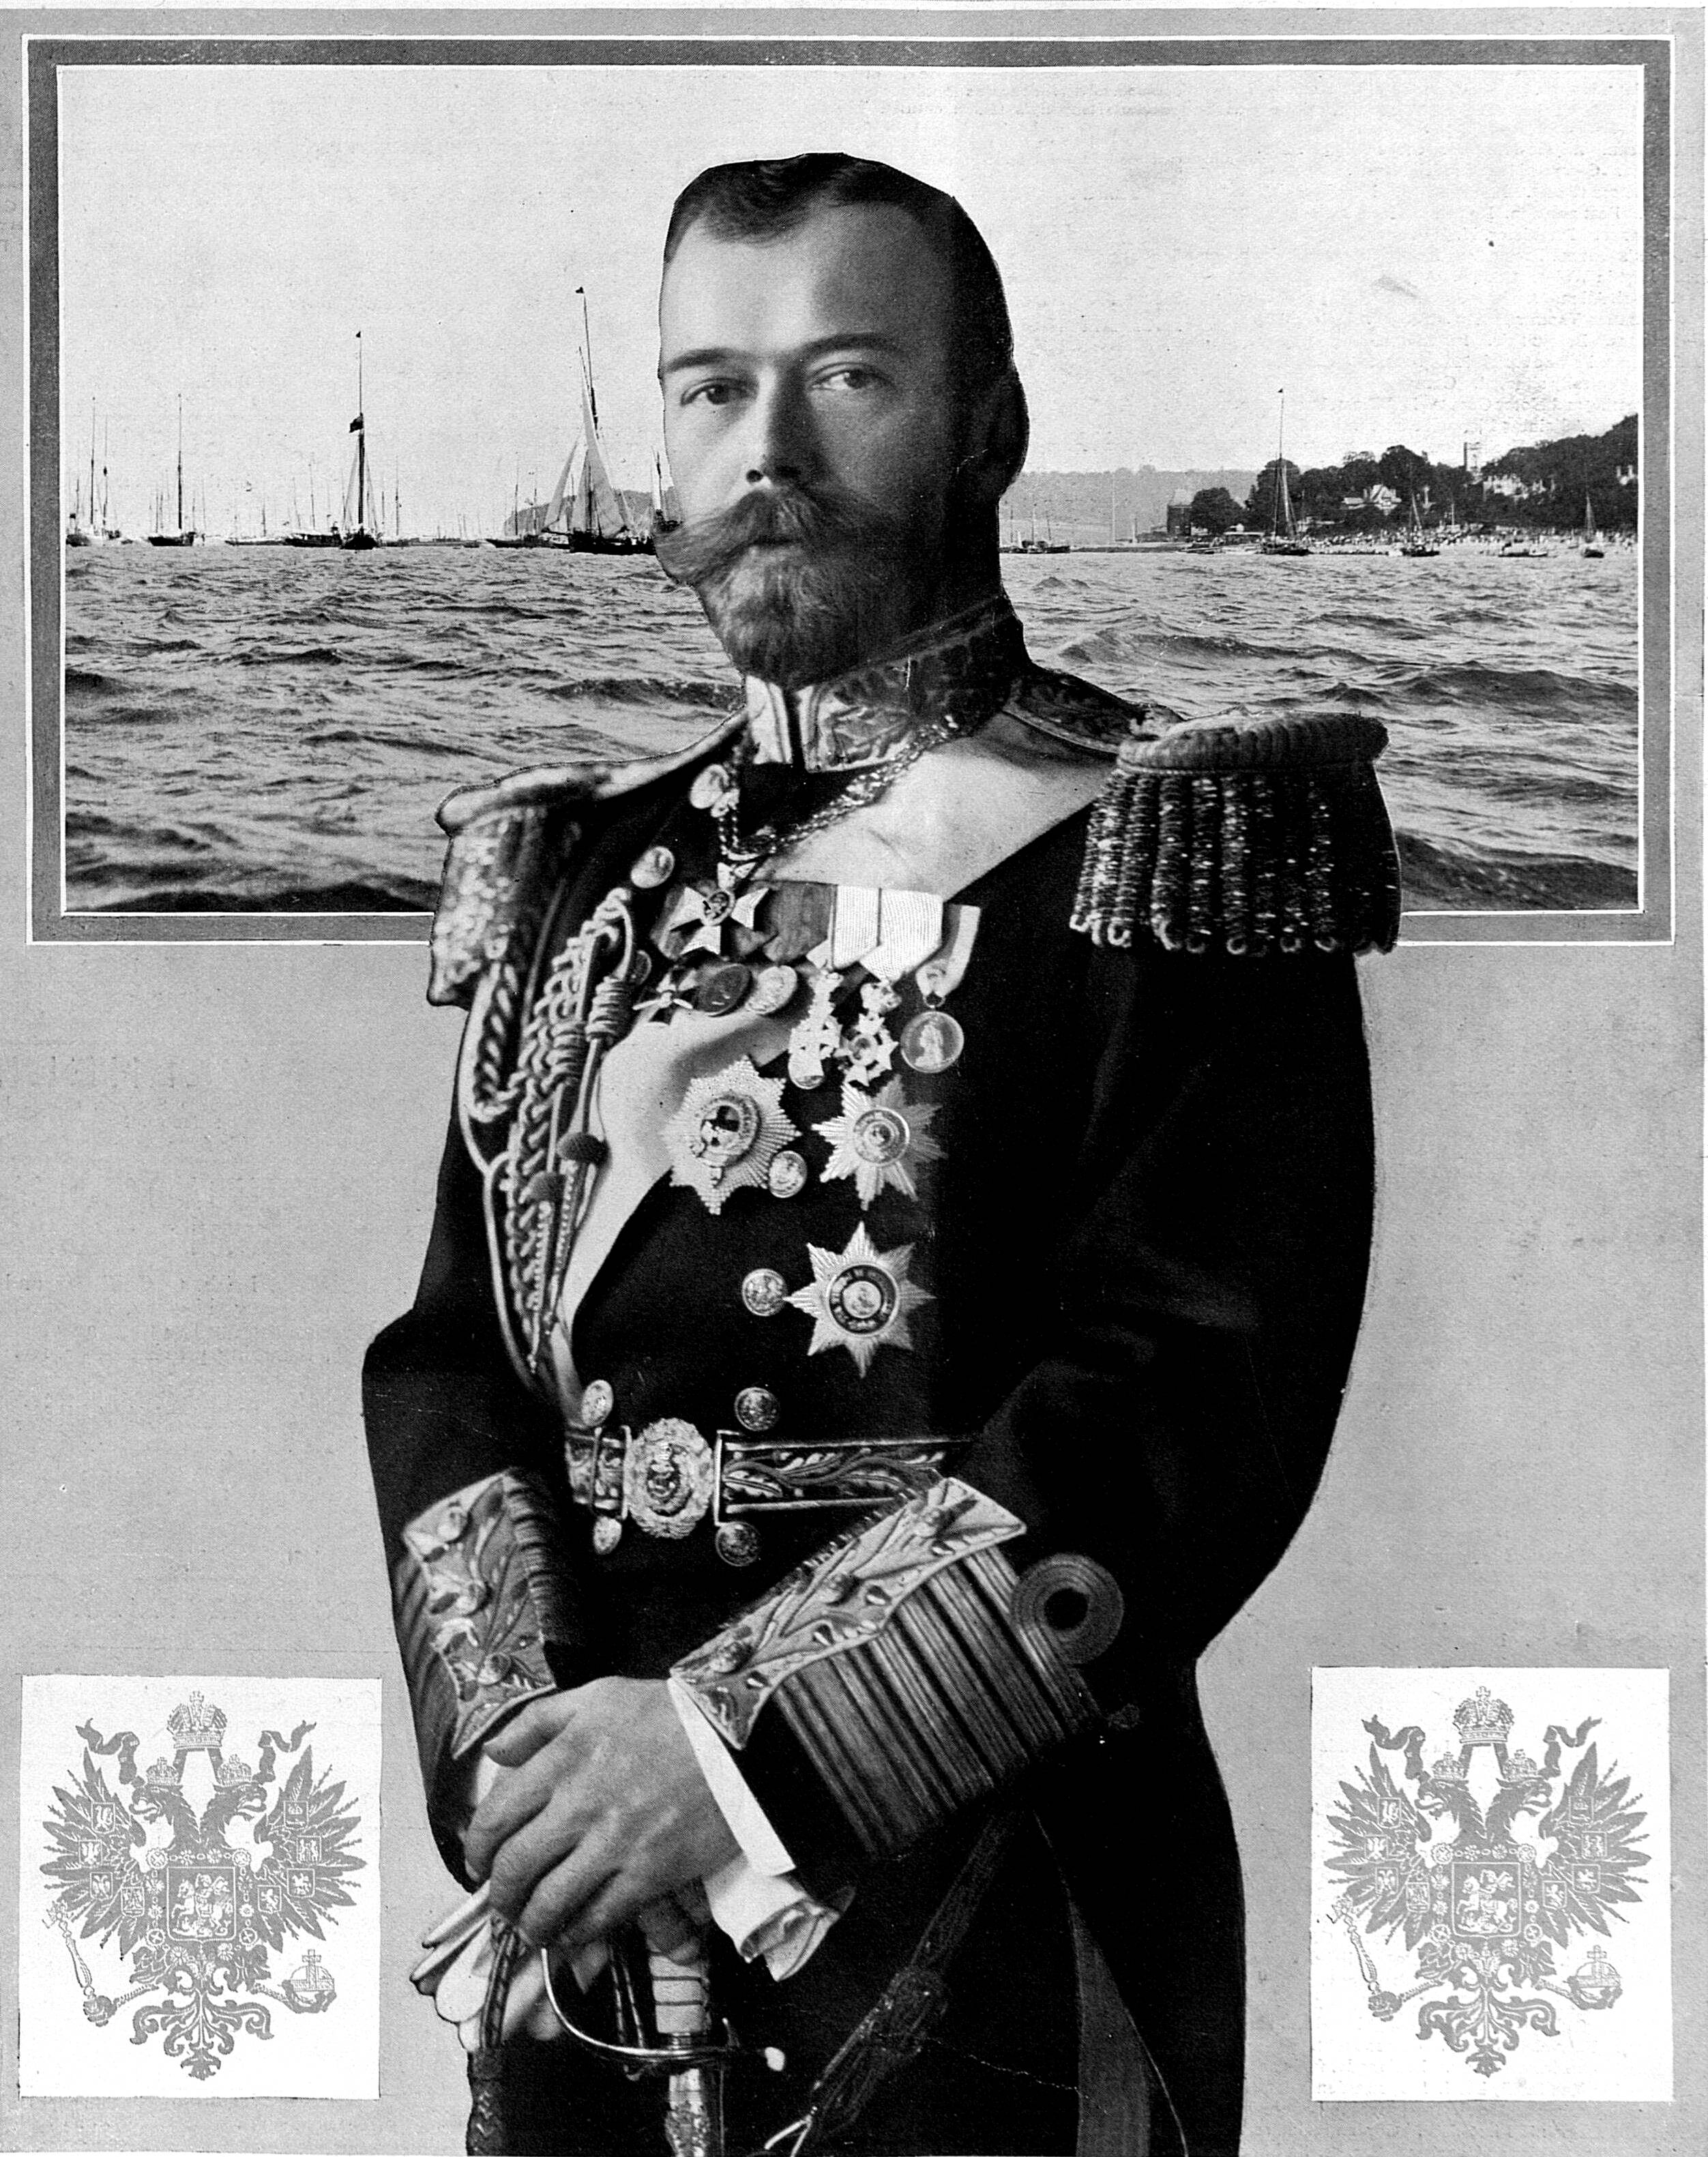 downfall of the tsarist regime A history as/a level section b exemplar essay typed up from the 2016 aqa summer exam the question being: 'tsar nicholas ii's downfall in february/march 1917 was the result of popular discontent for the tsarist regime.